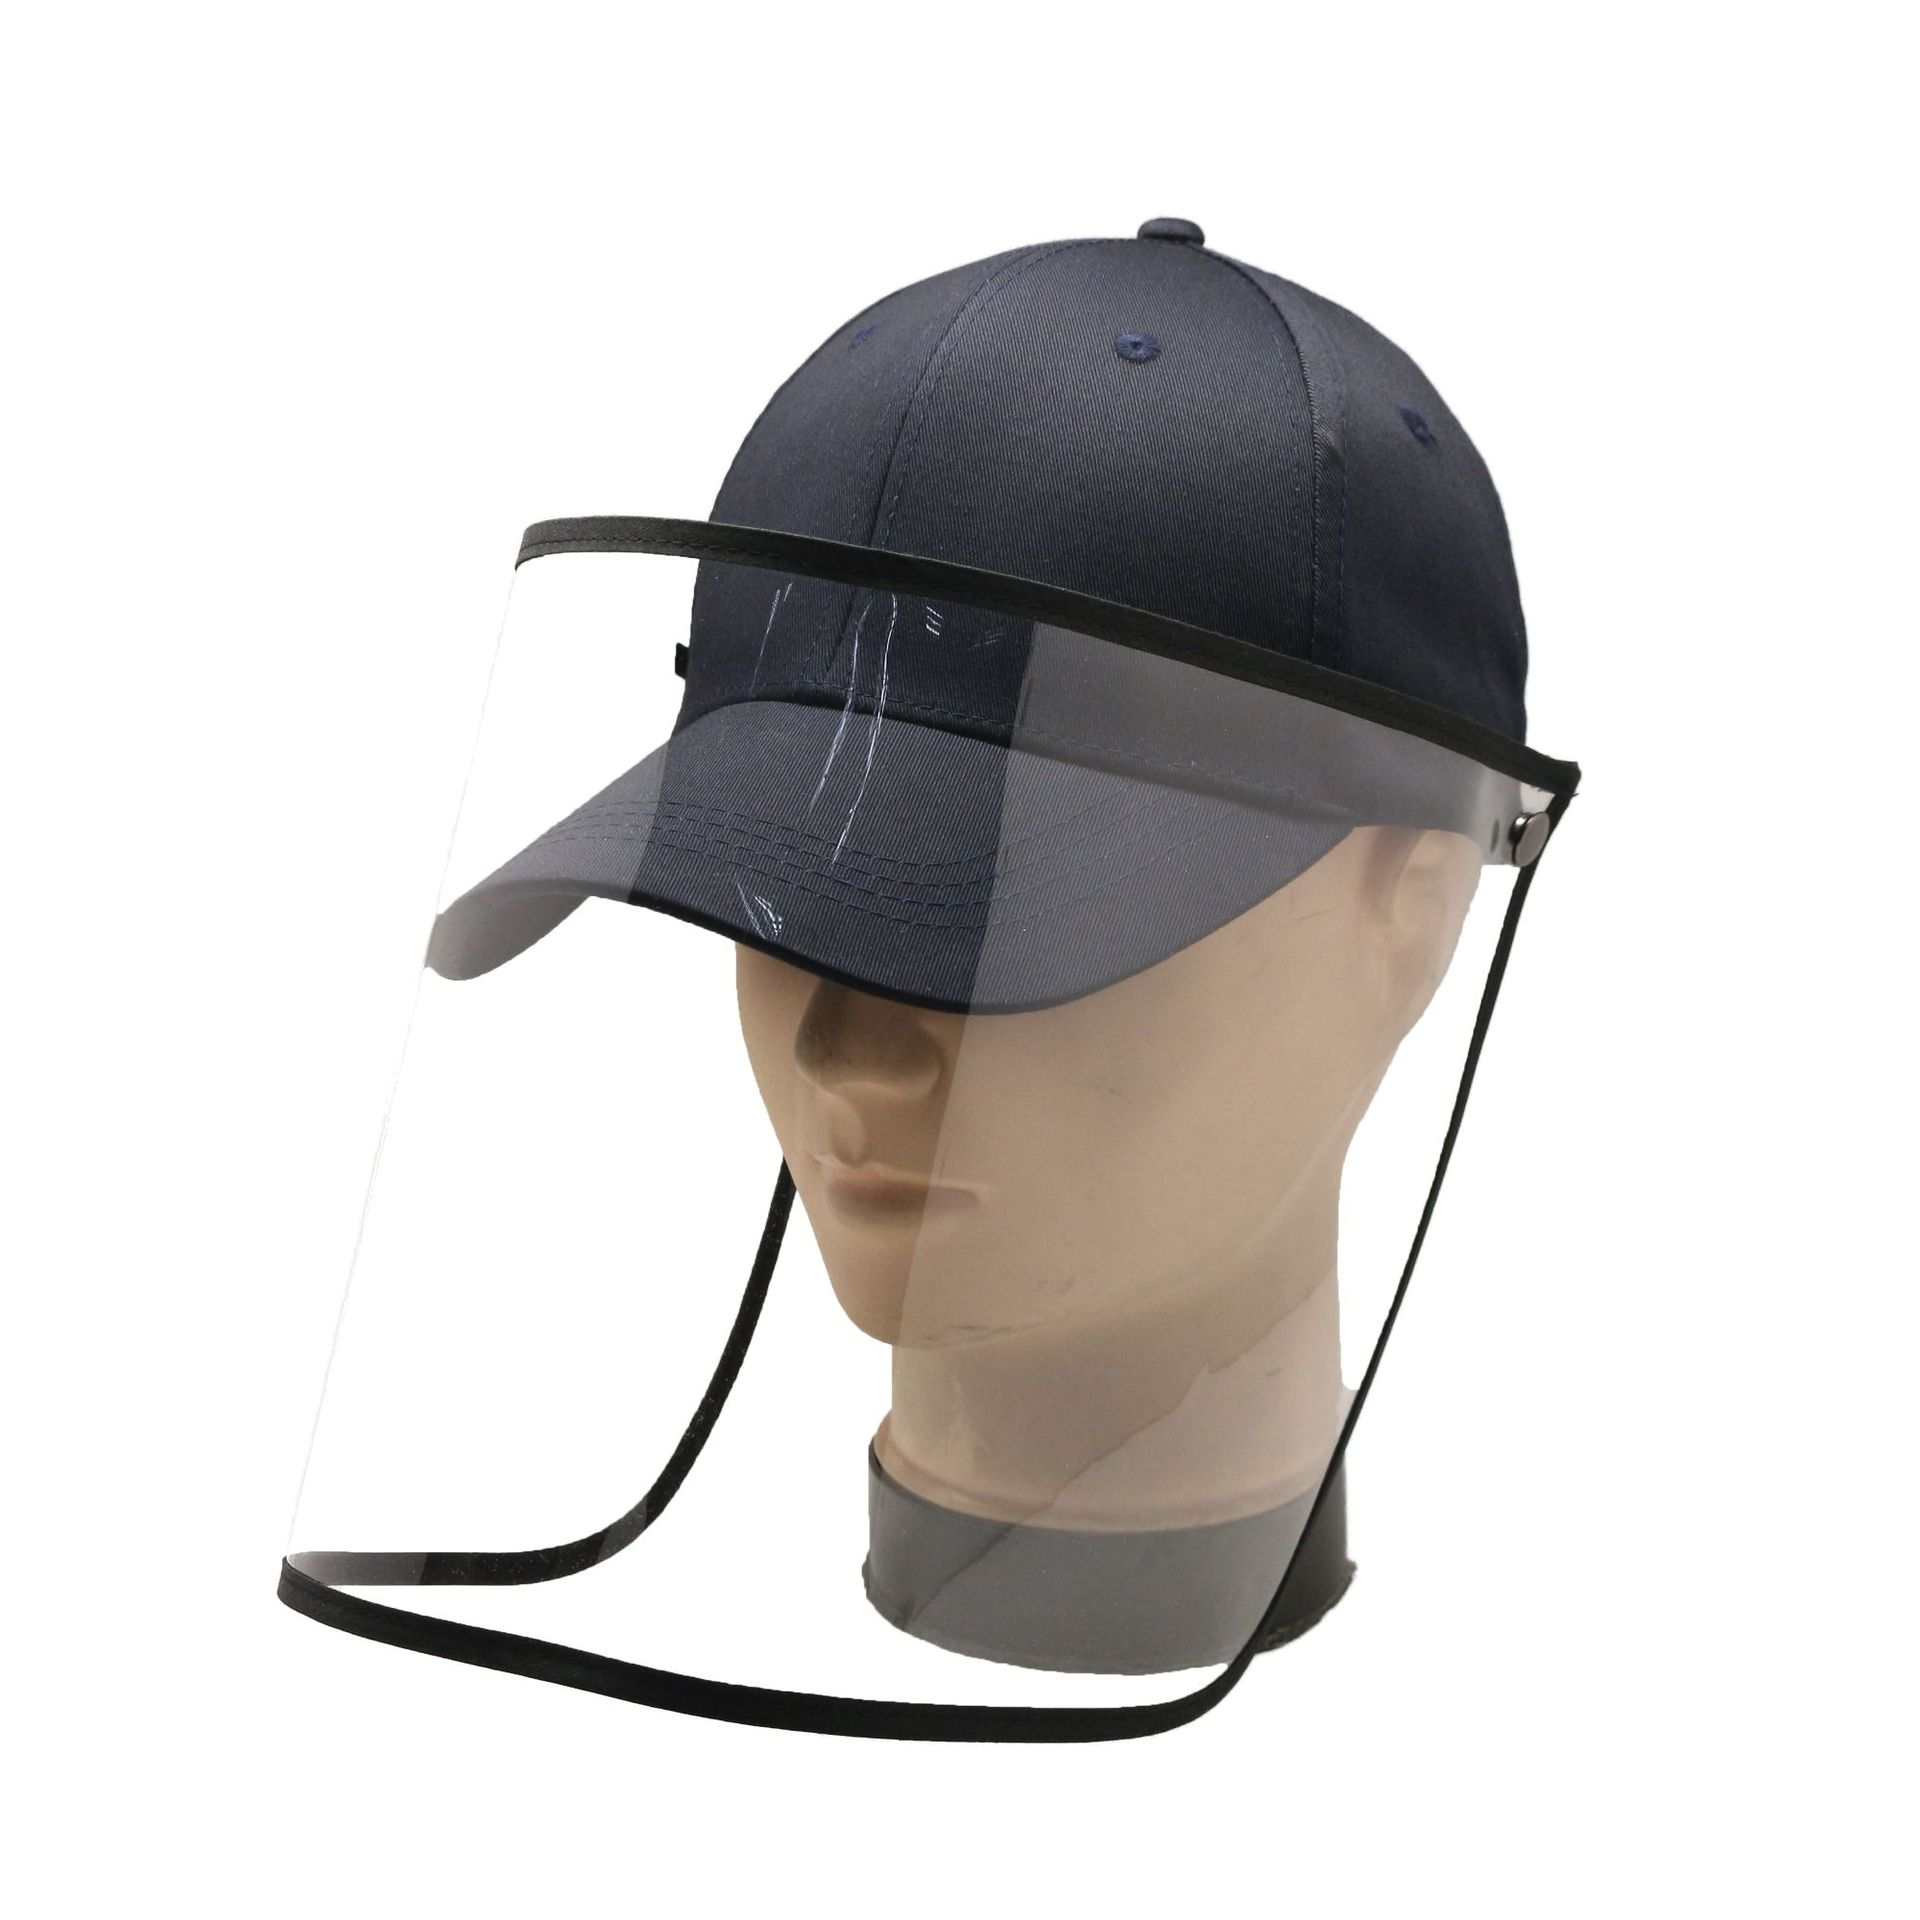 Transparent Plastic Safety Faces Shields Screen Spare Visors For Head Mask Eye Faces Protection